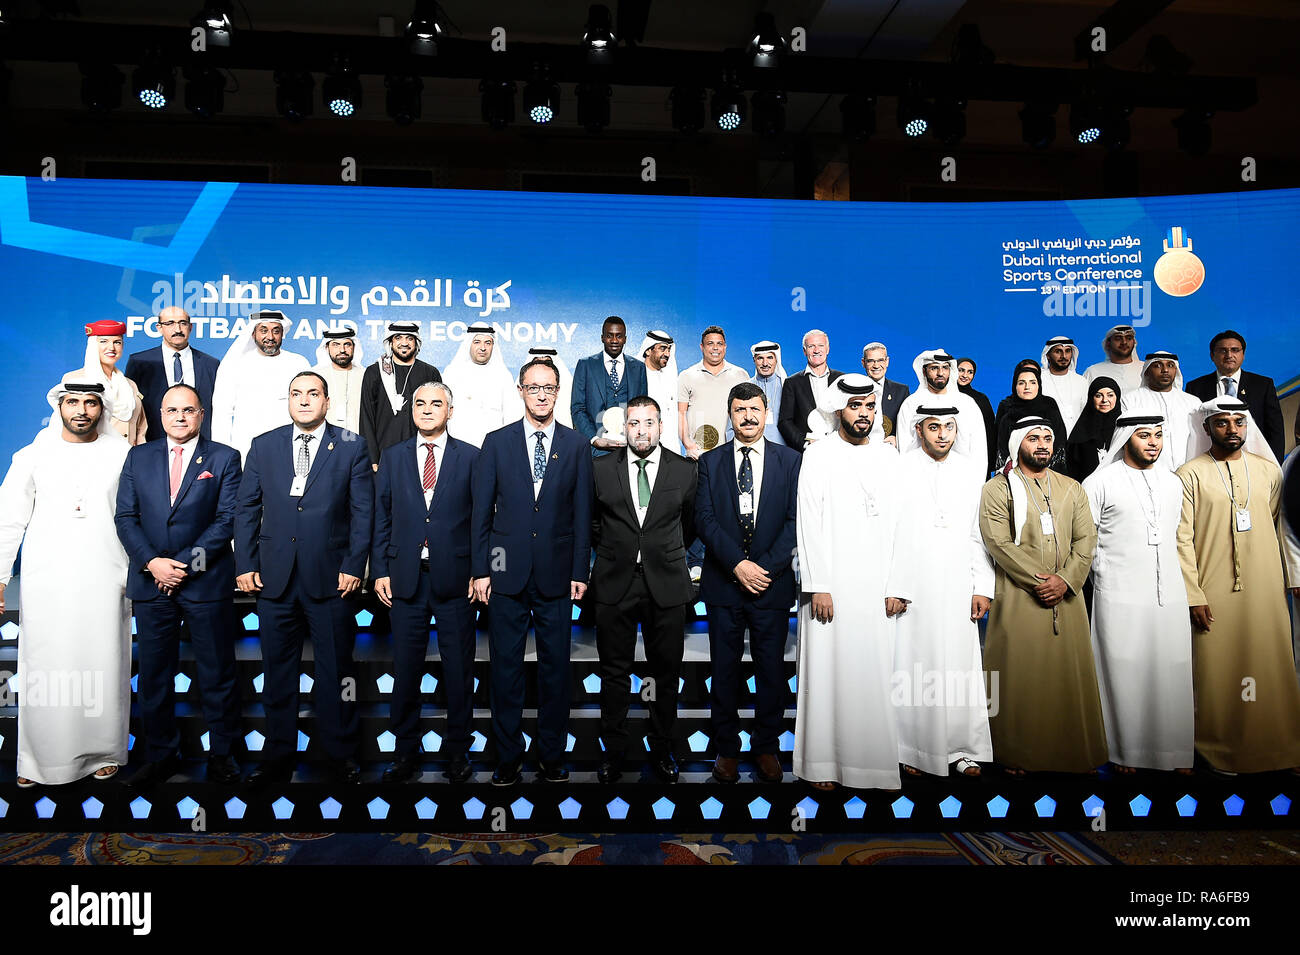 Dubai, UAE  2nd January, 2019  Economic Opportunities of Players and